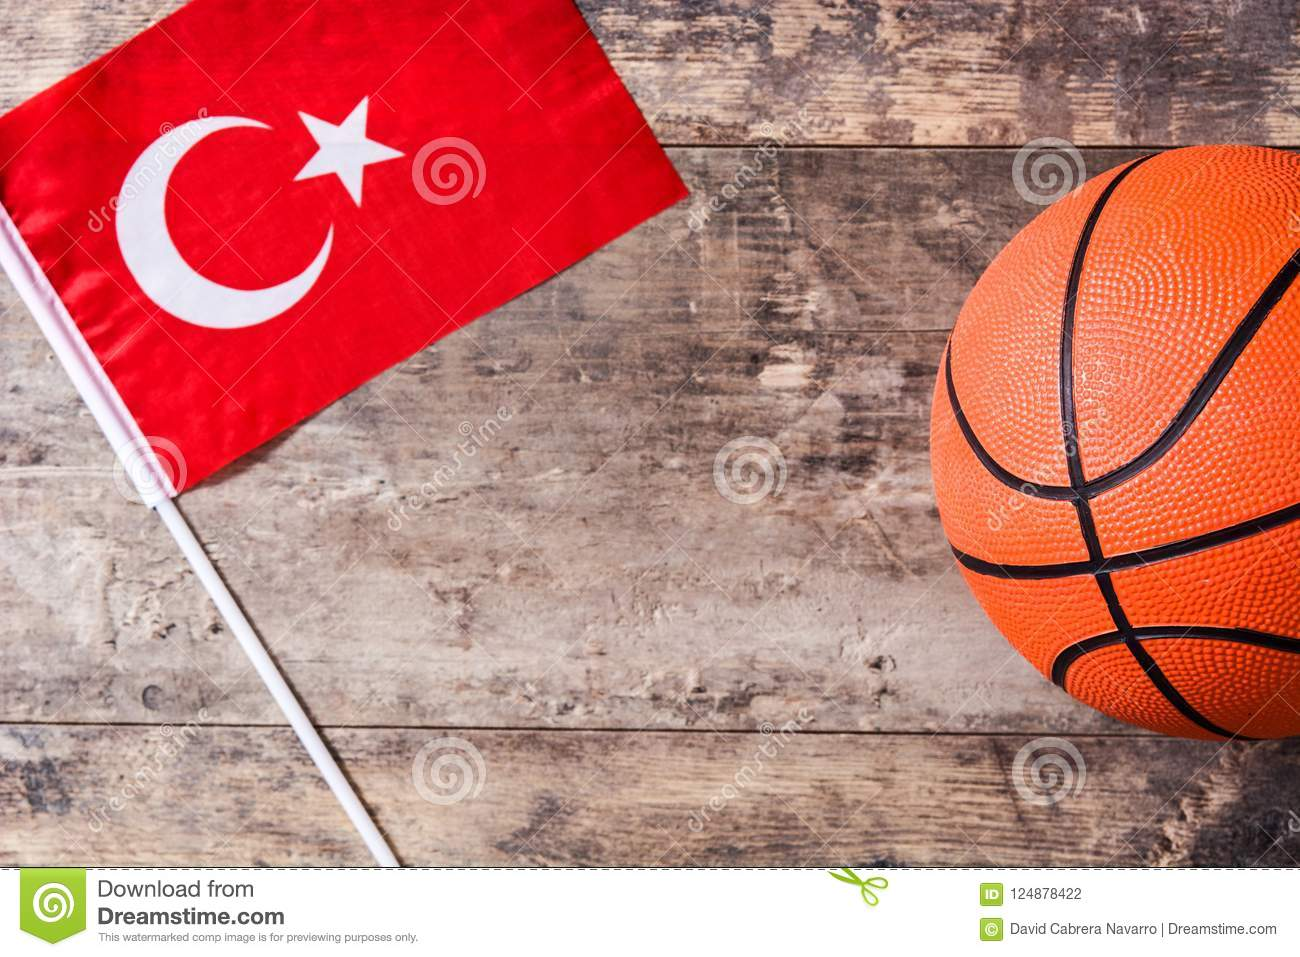 Basketball and Turkey flag on wooden table.